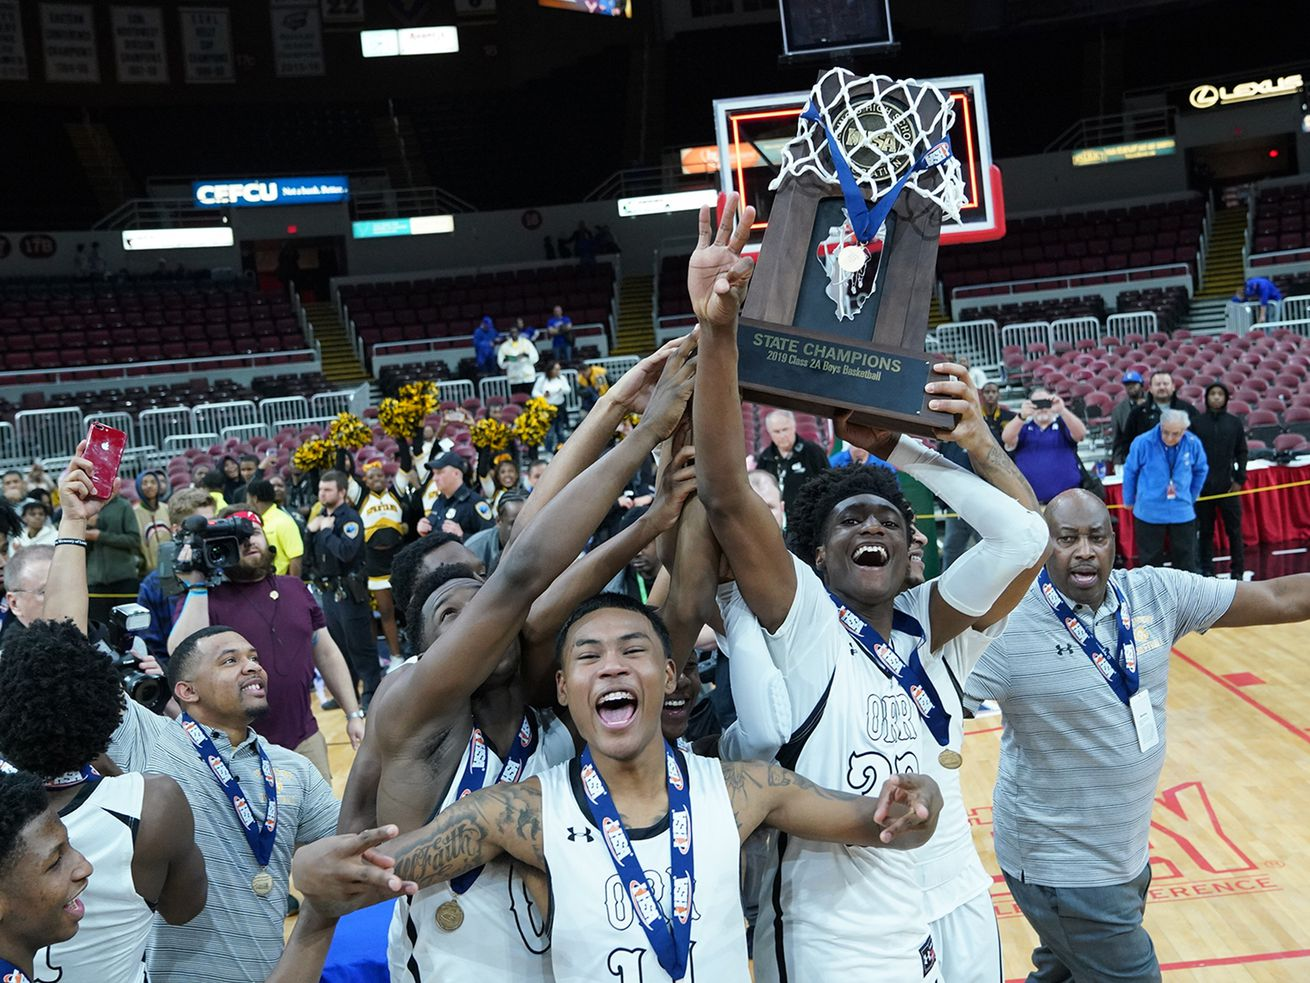 Orr holds up the Class 2A state championship trophy in 2019.